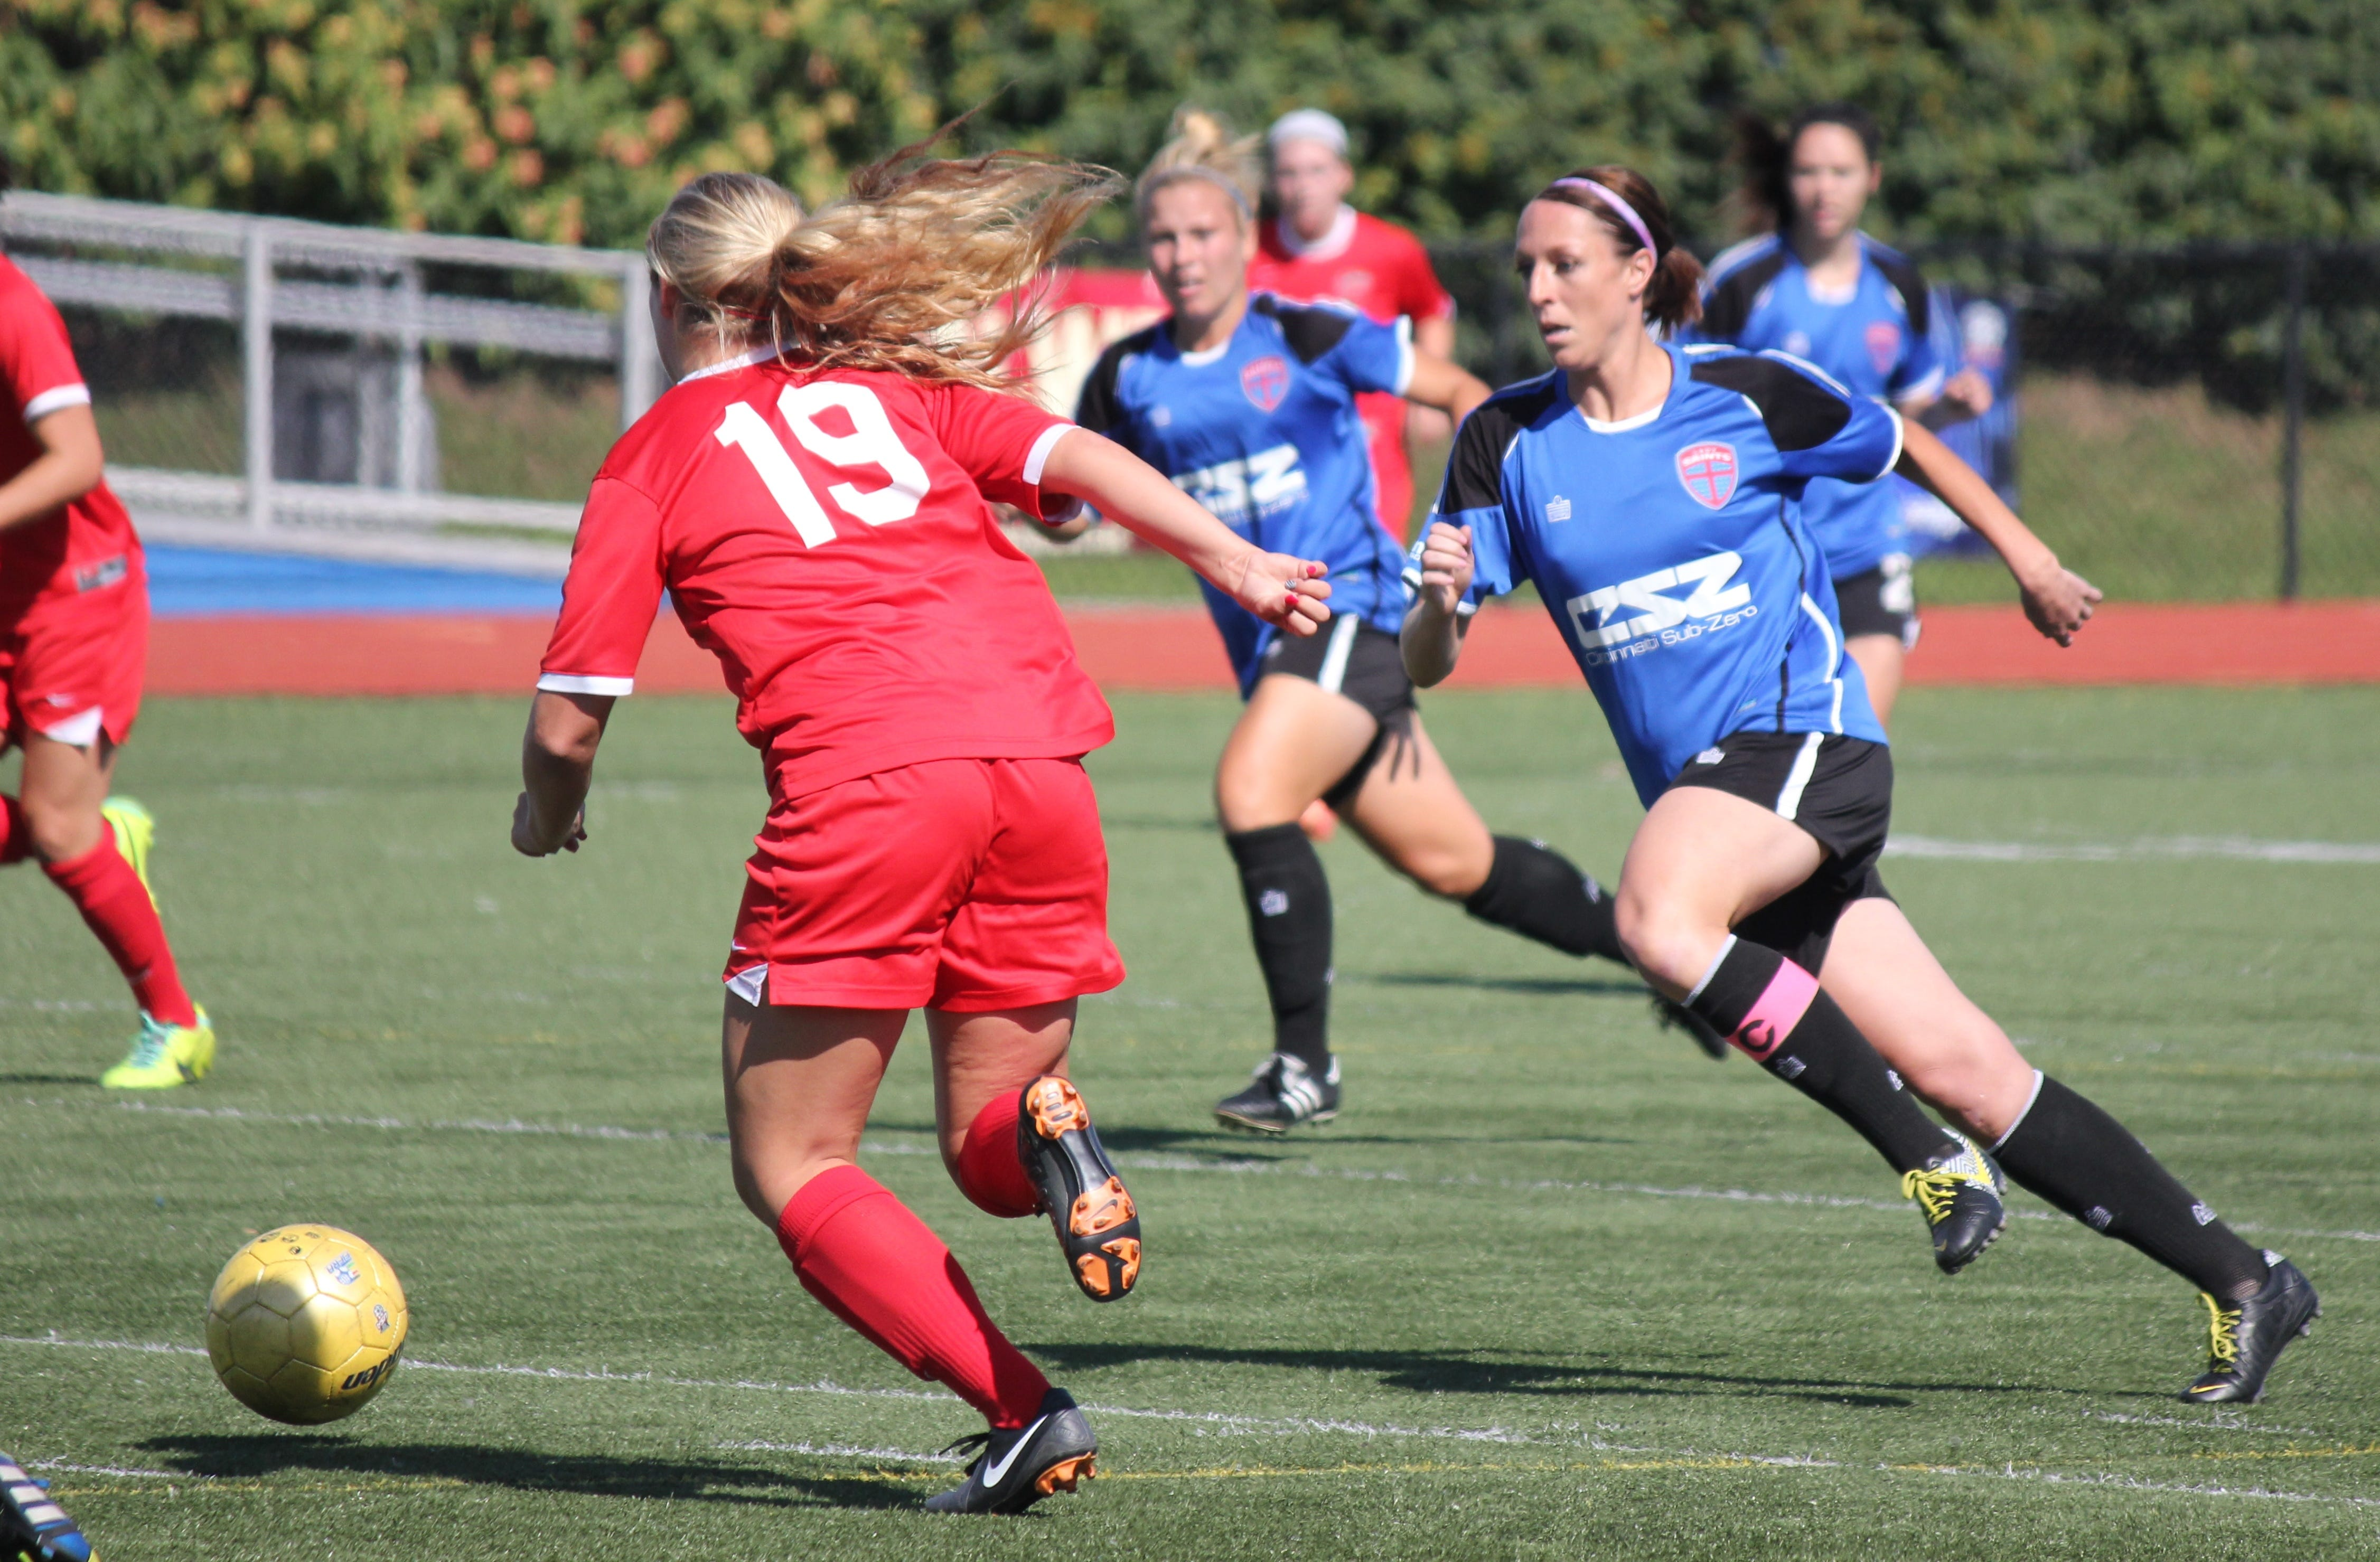 Lady Saints co-captain Kim Comisar-Granell (Lakota West/Purdue) goes for the ball at midfield in the July 5 game against FC Pride